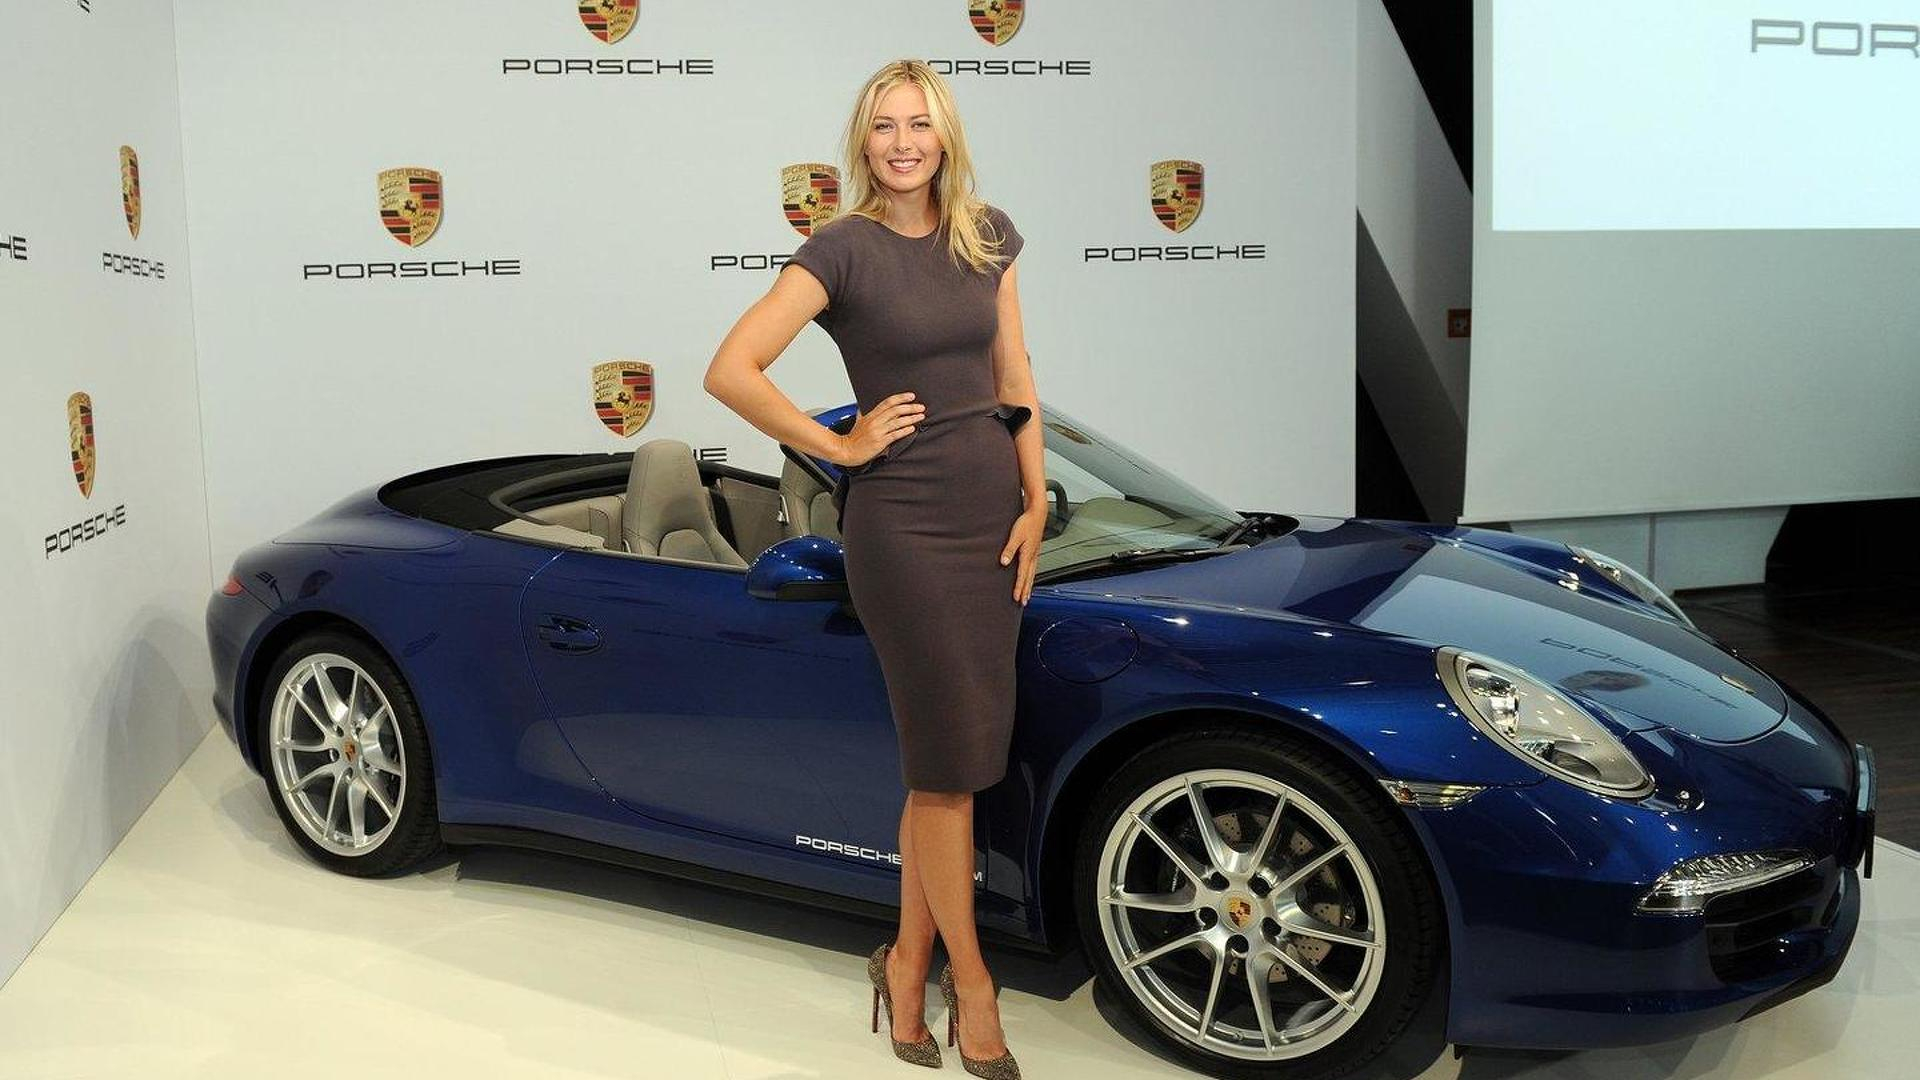 2591207c23d3 Porsche suspends relationship with tennis star Maria Sharapova